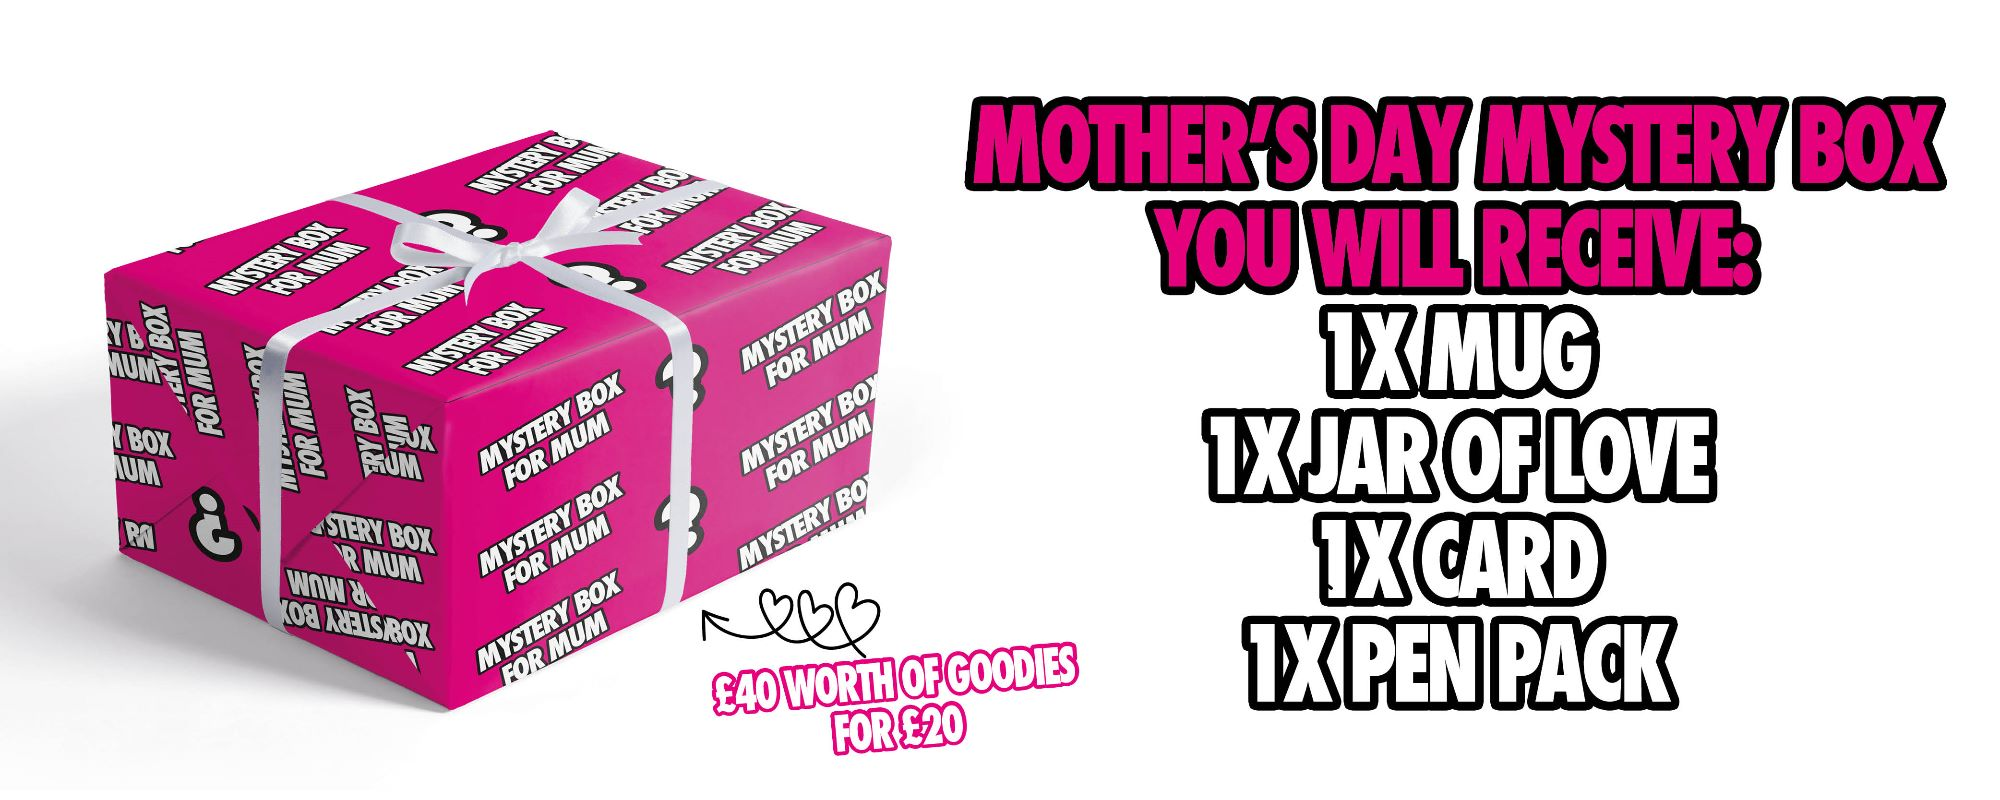 Naughty Greeting Cards CLICK HERE MYSTERY BOX MUM